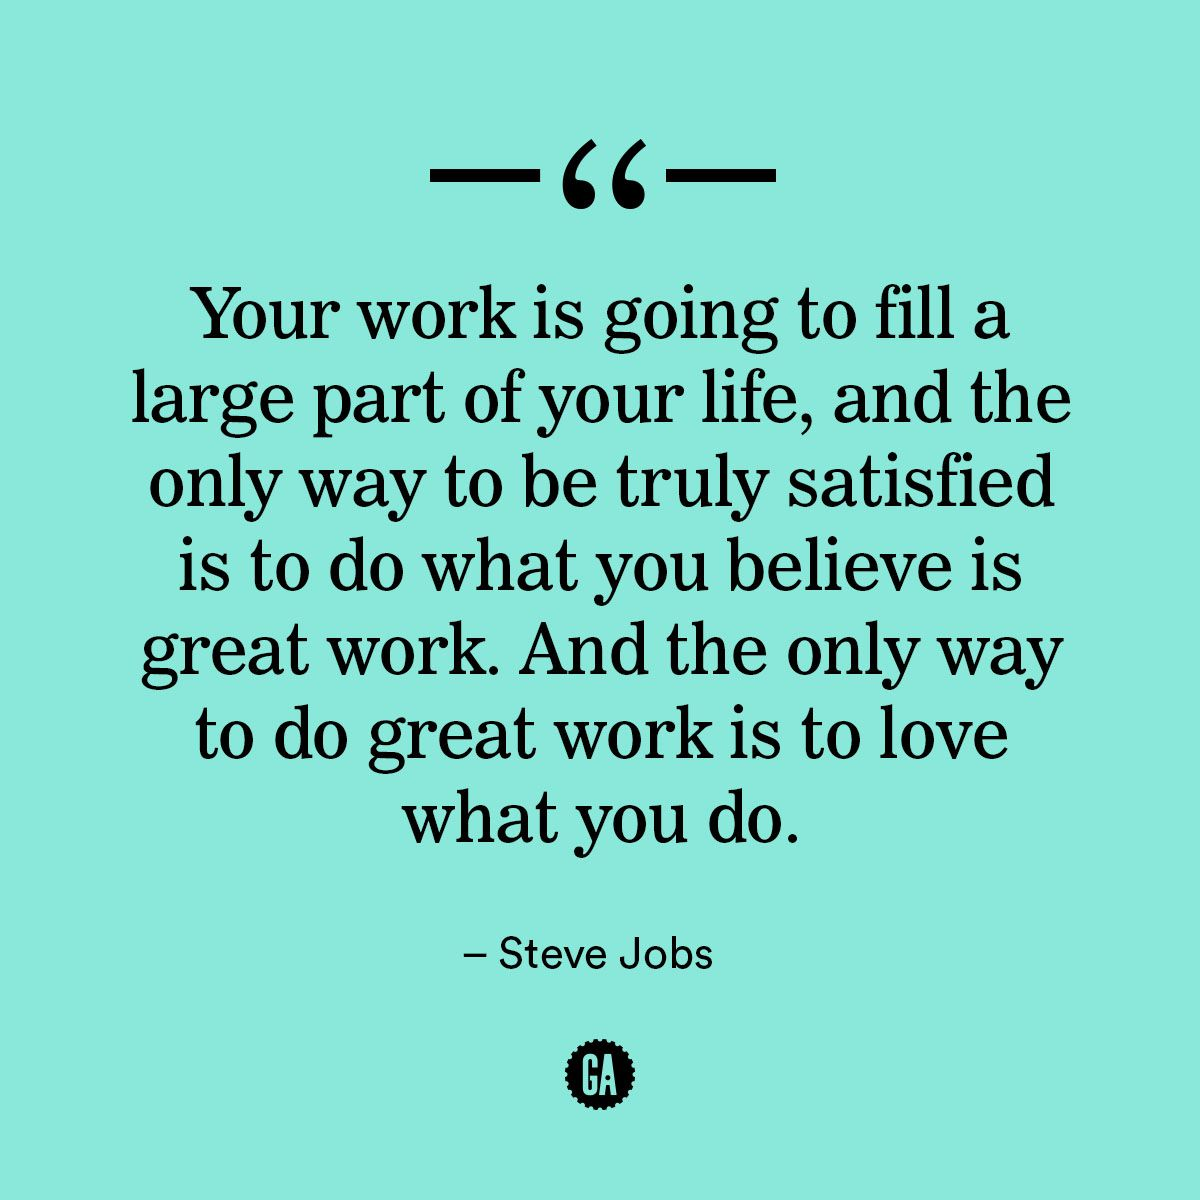 Job Quotes Inspiration Love What You Dodo Great Work#mondaymotivation